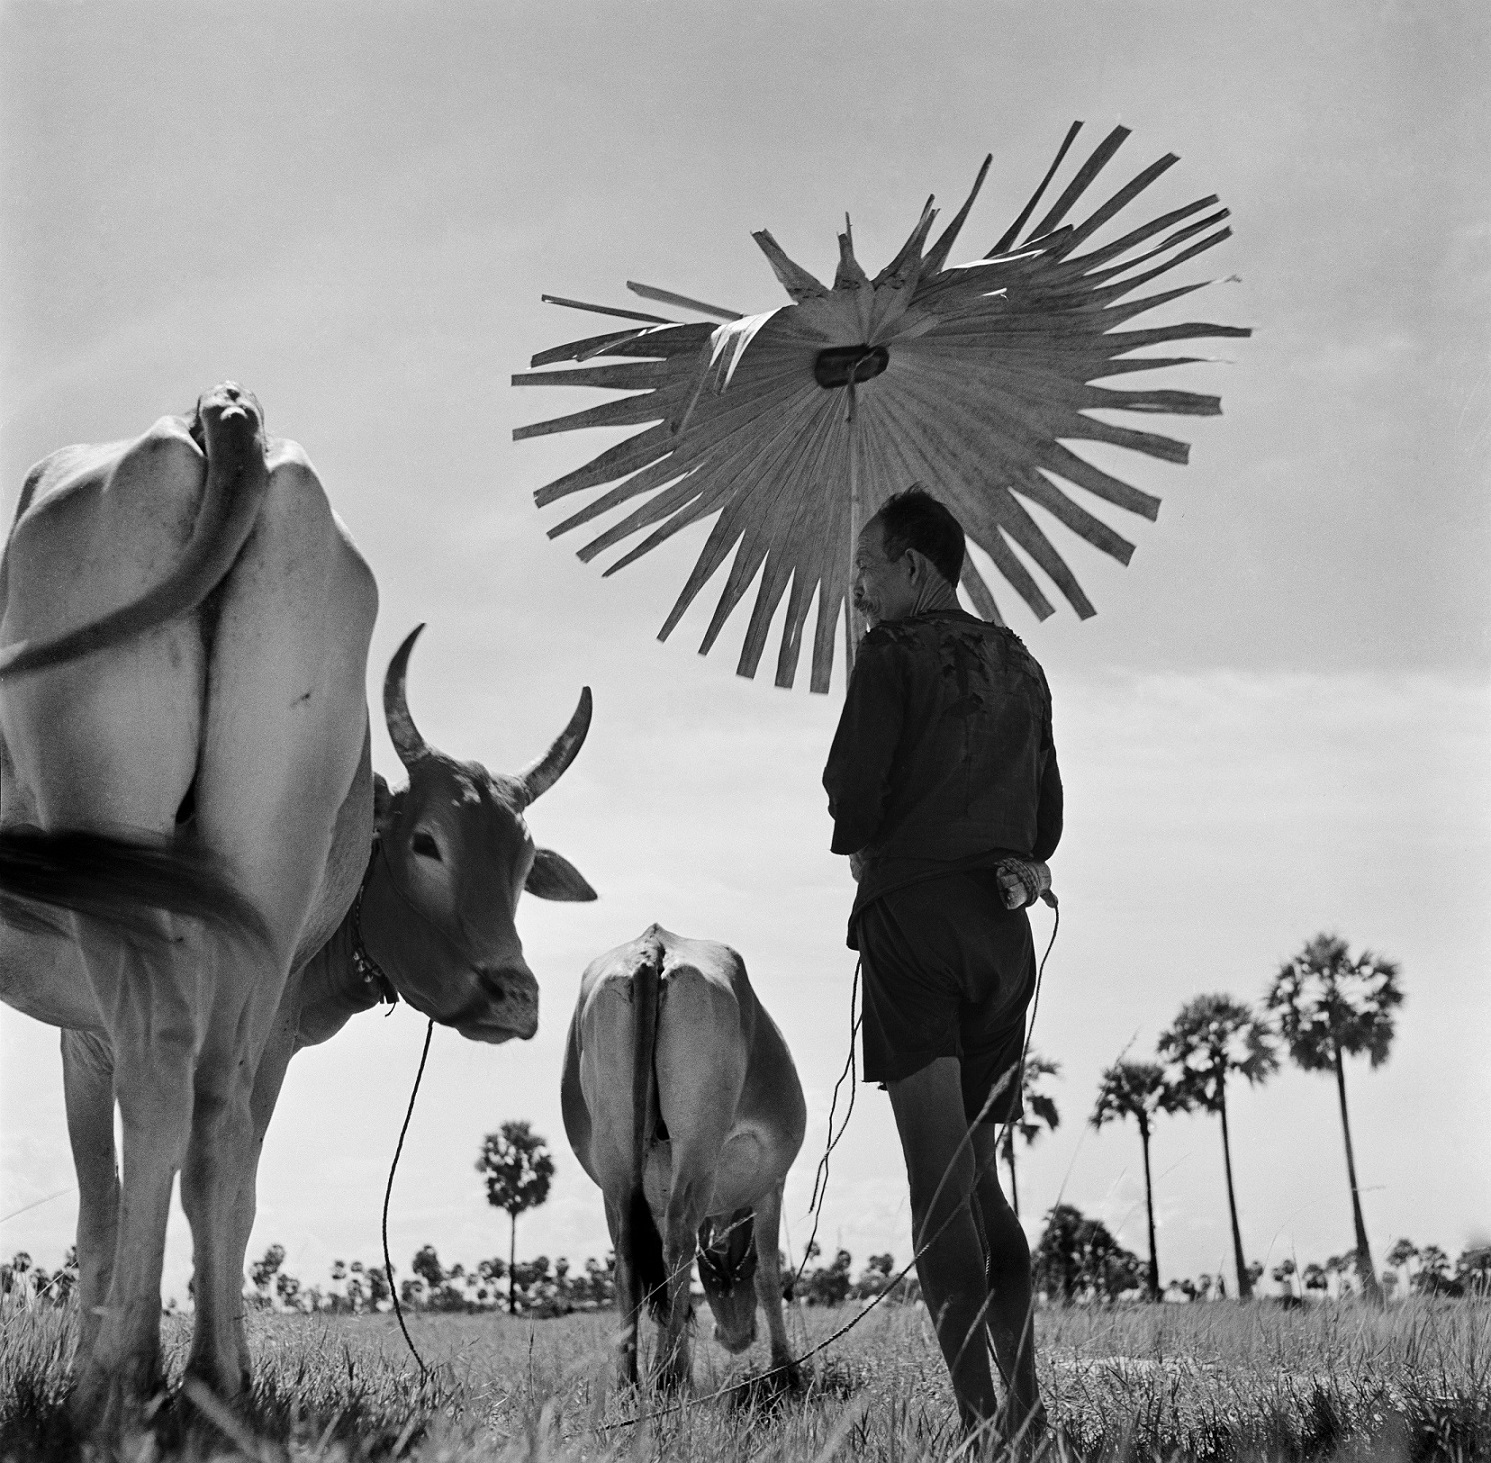 CAMBODIA. Farmer shading himself as he looks after his grazing cows.